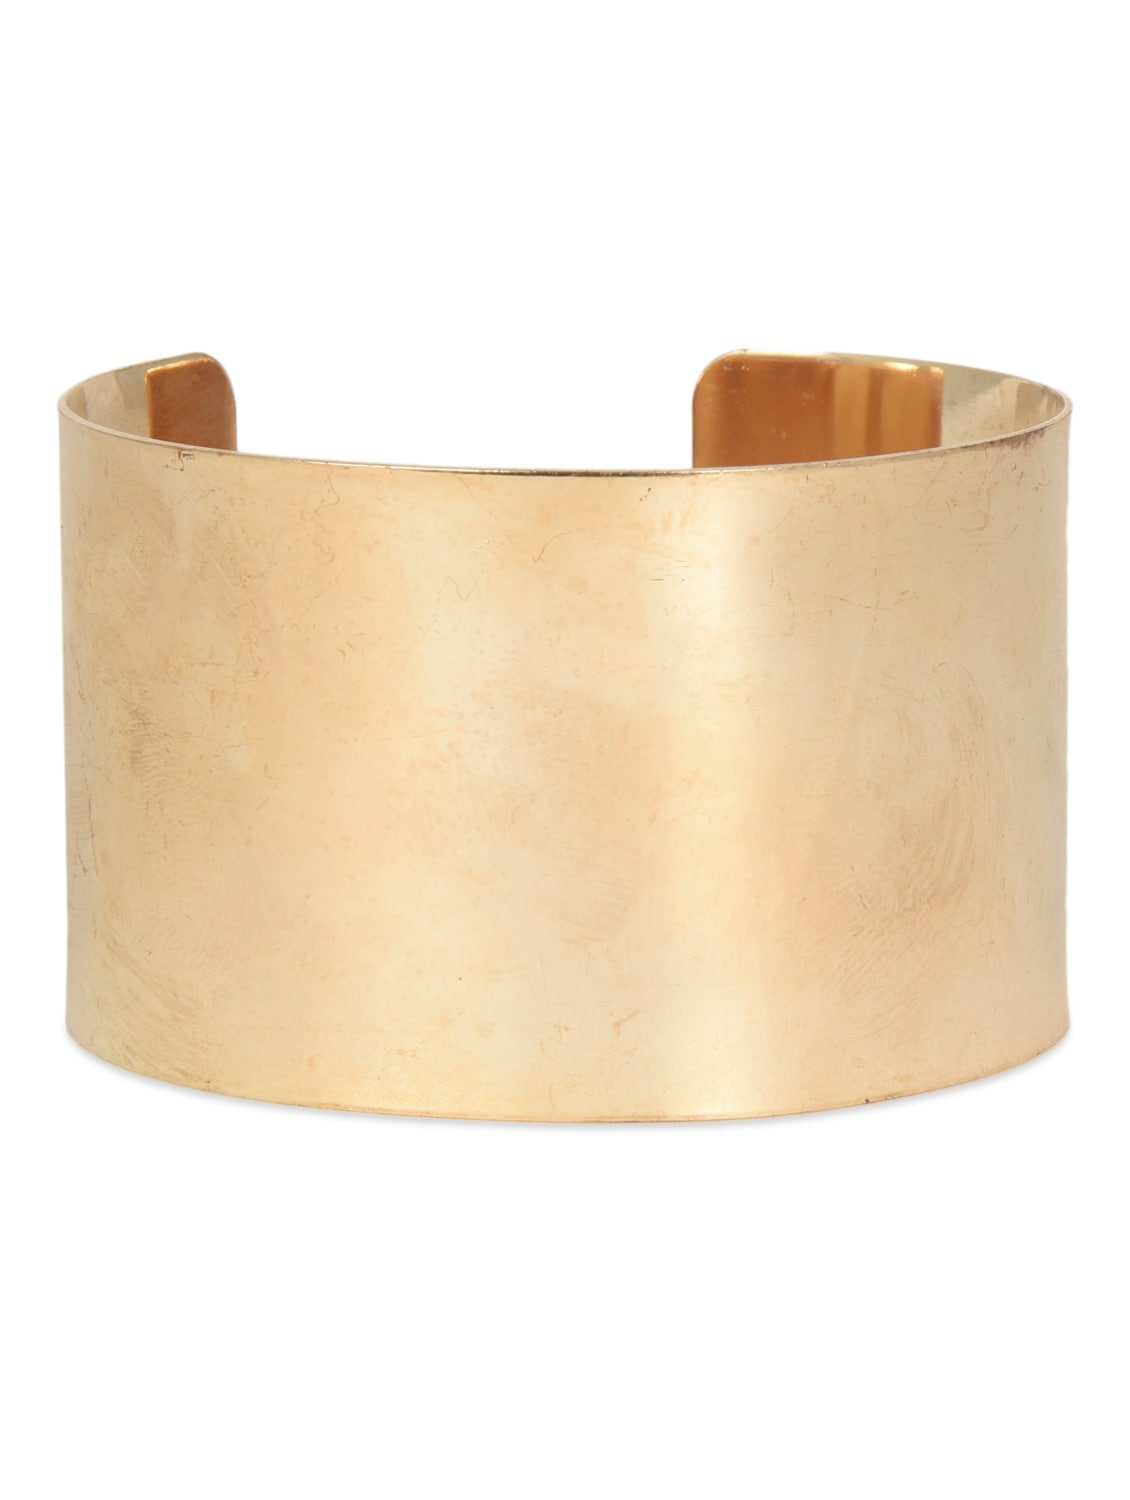 Gold Metallic Cuff Bracelet With Adjustable Loop Closure - By